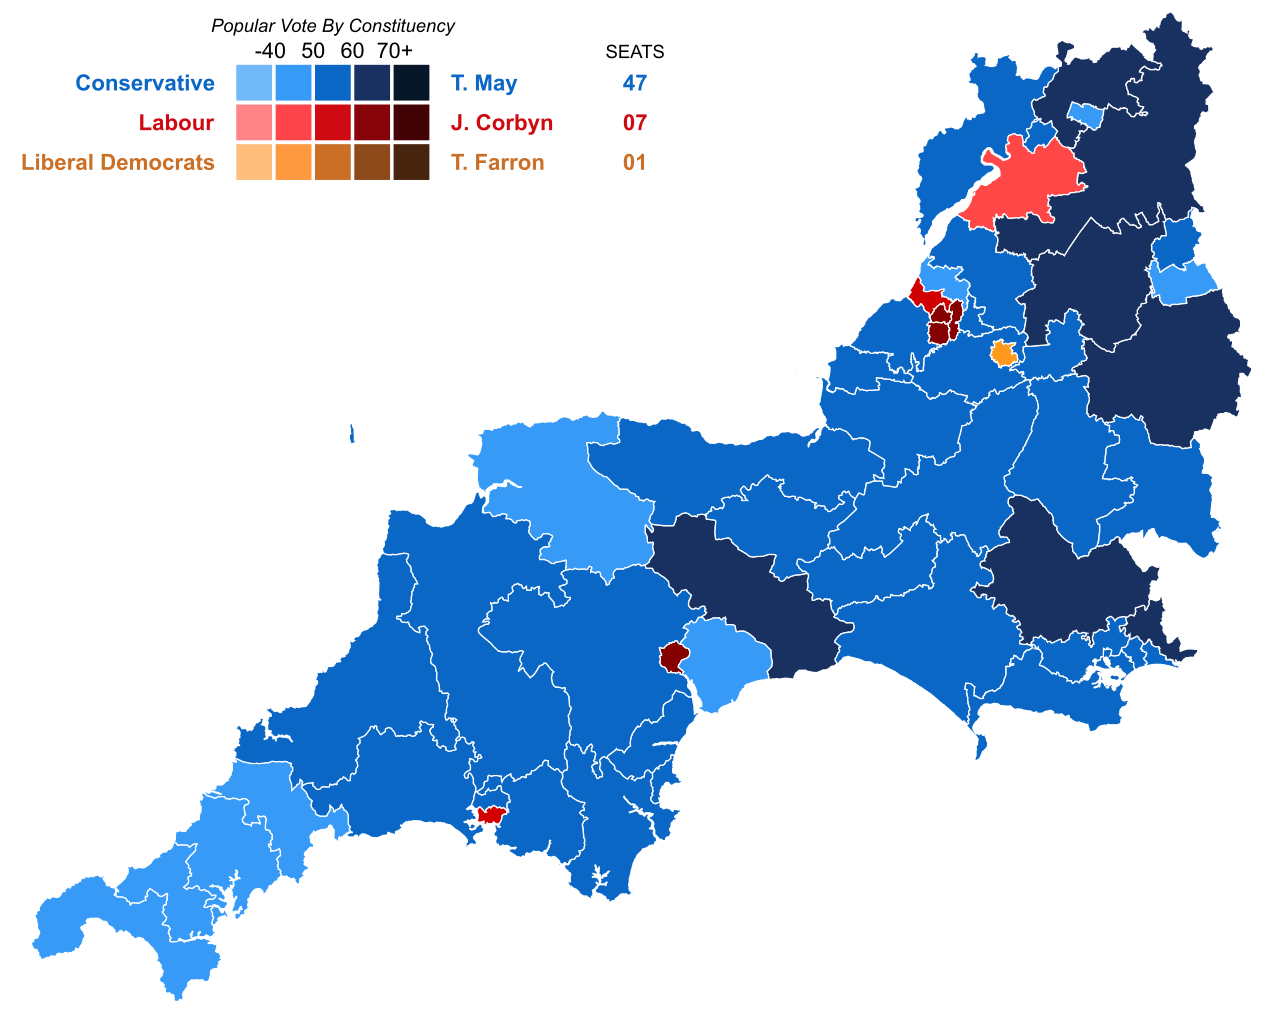 Map Of Uk General Election Results.United Kingdom General Election 2017 Results Map South West England